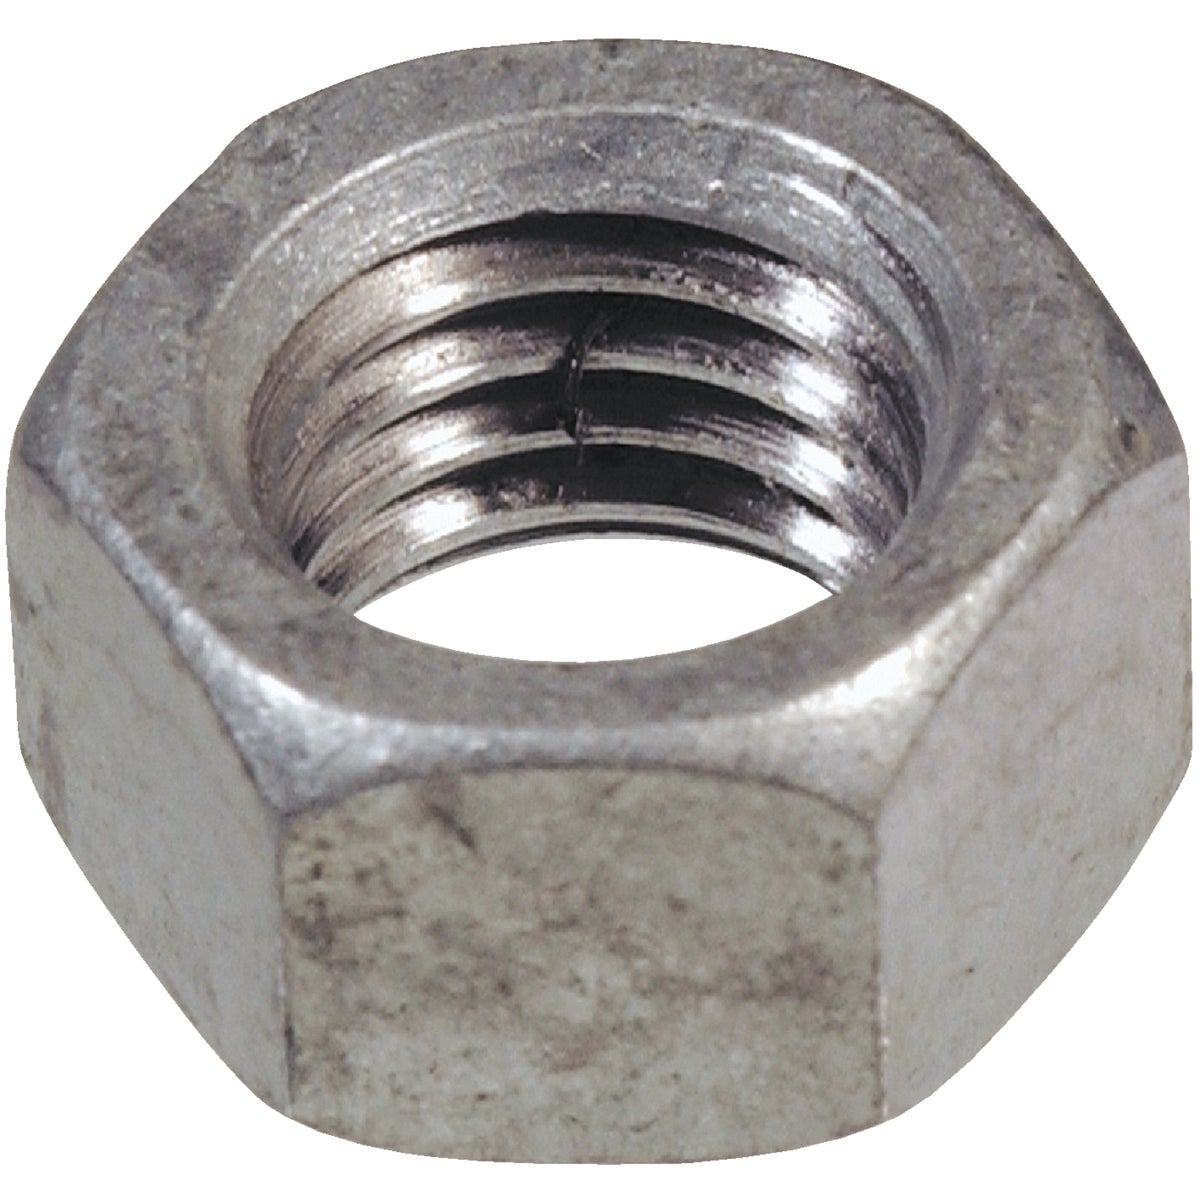 25PC 5/8-11 HEX NUT - 810515 by Hillman Fastener